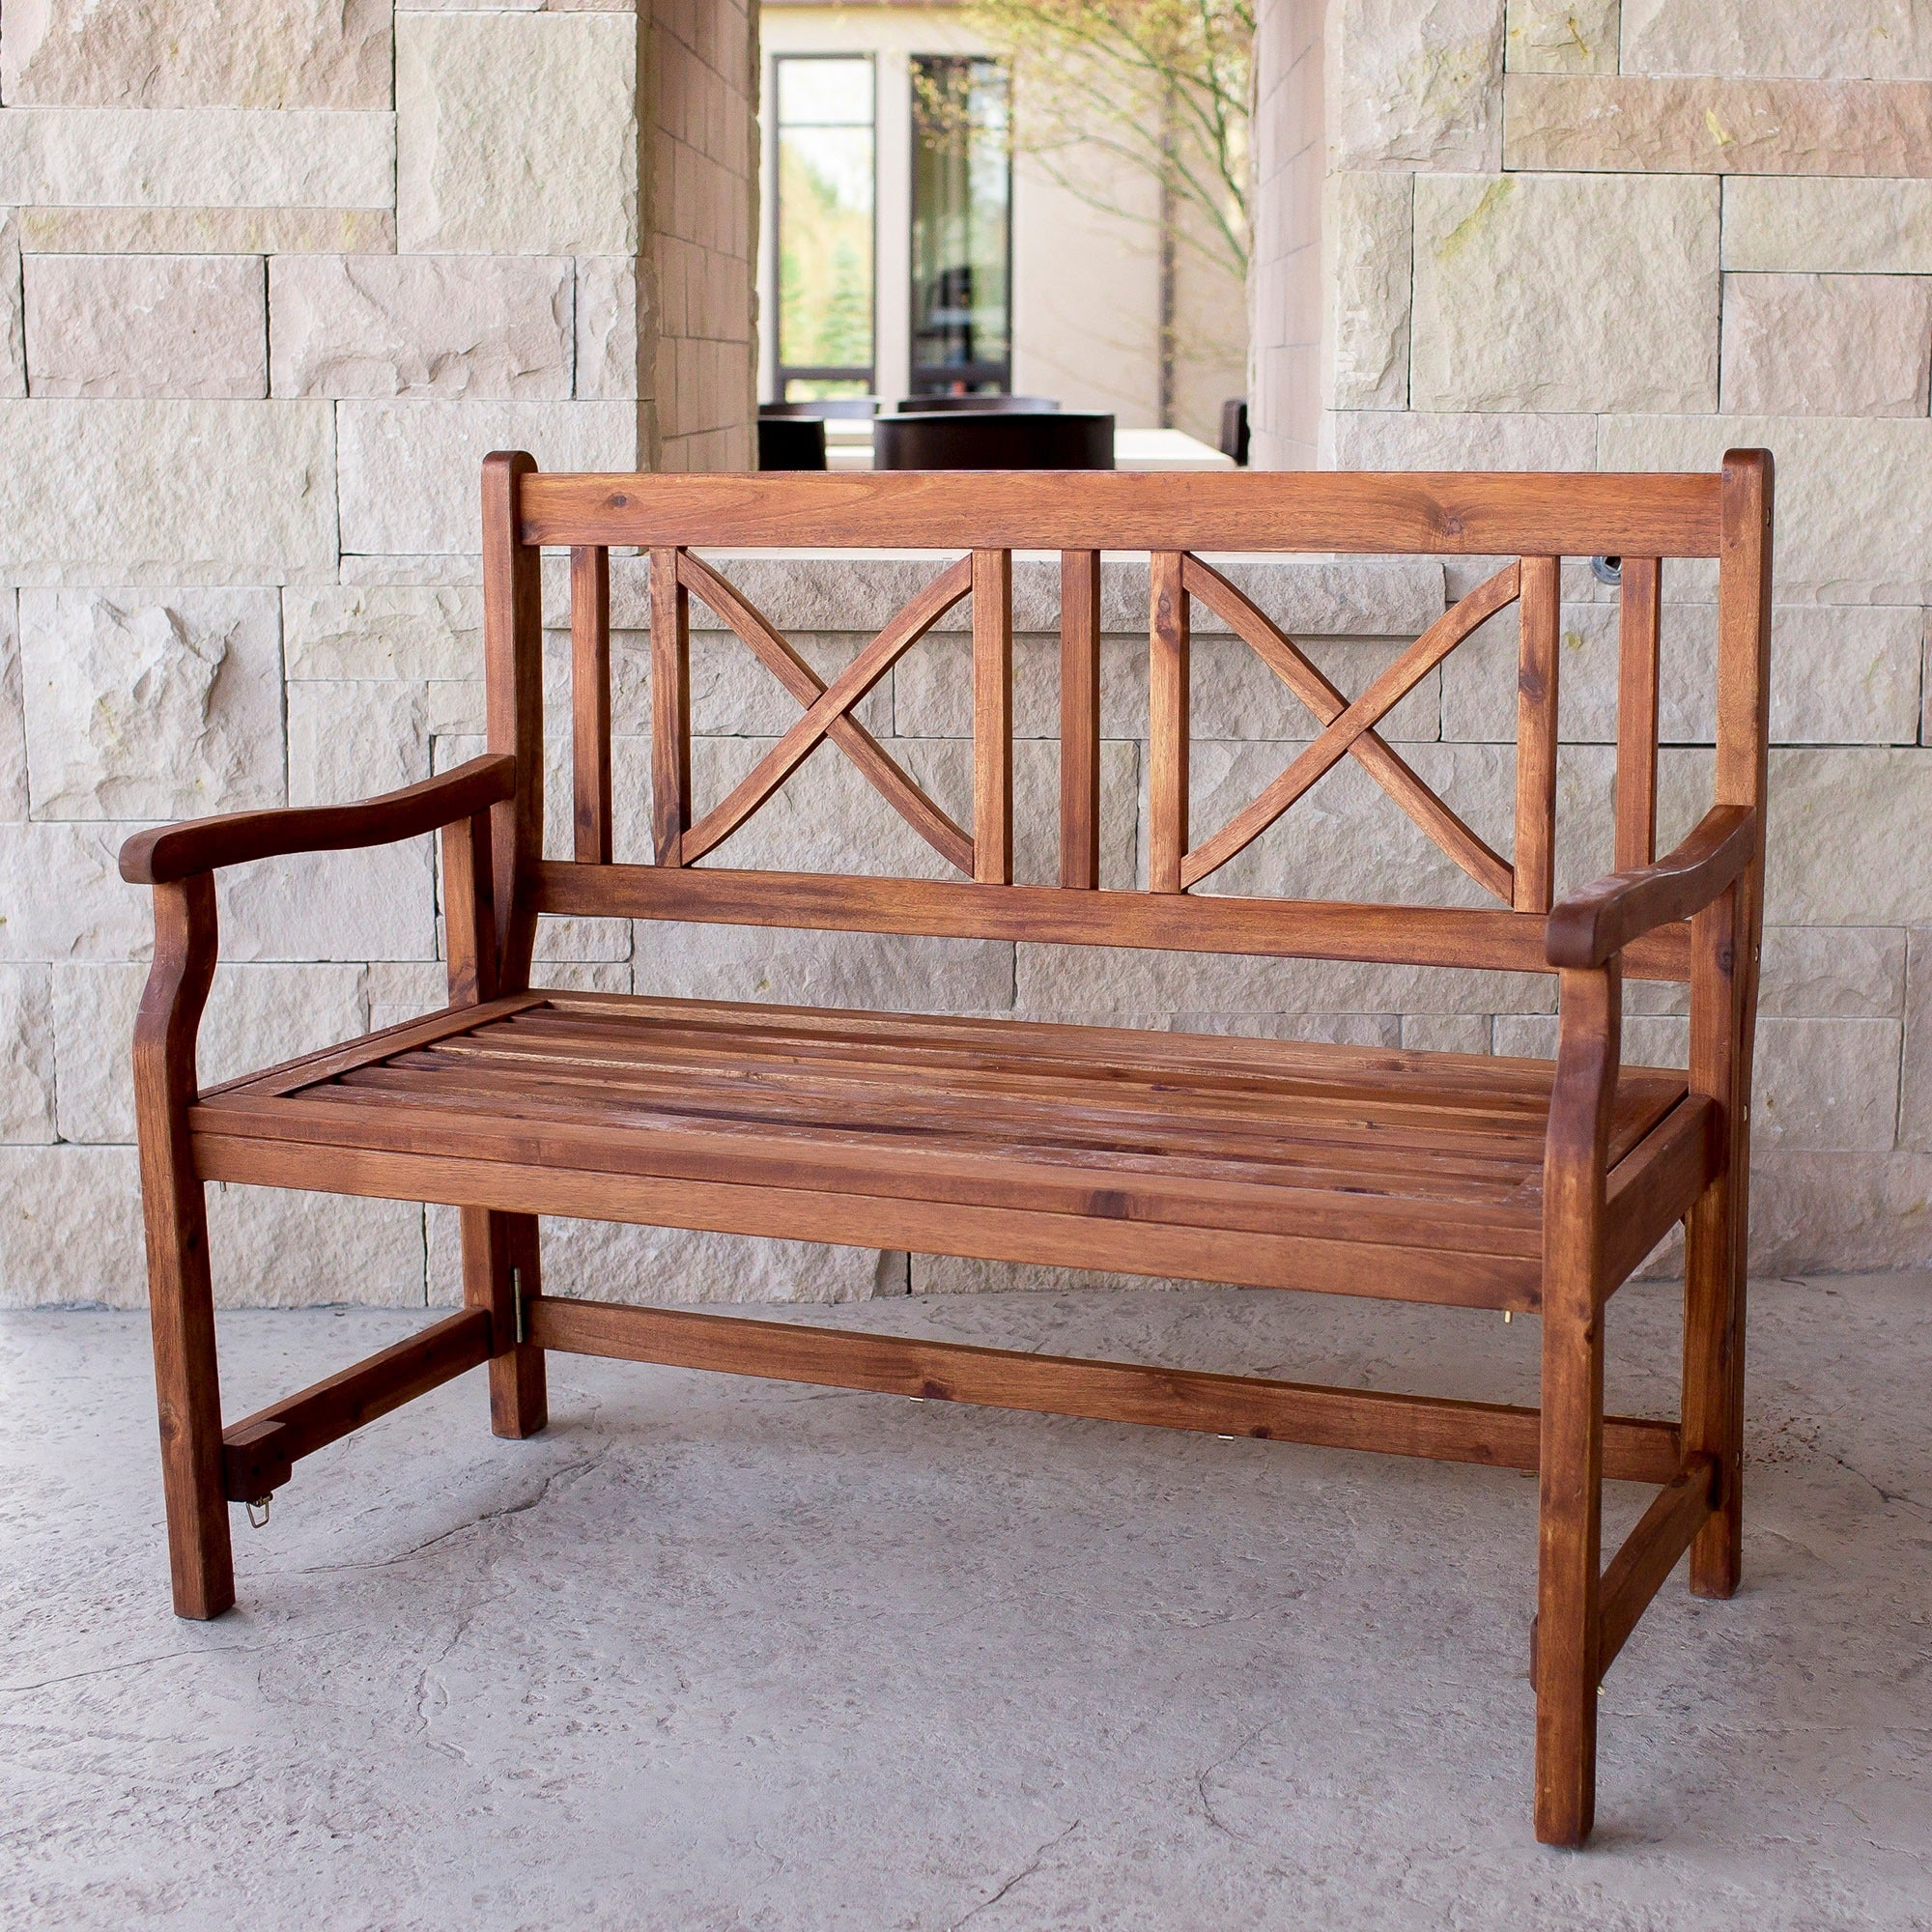 48 Inch Brown Acacia Wood Folding Patio Bench